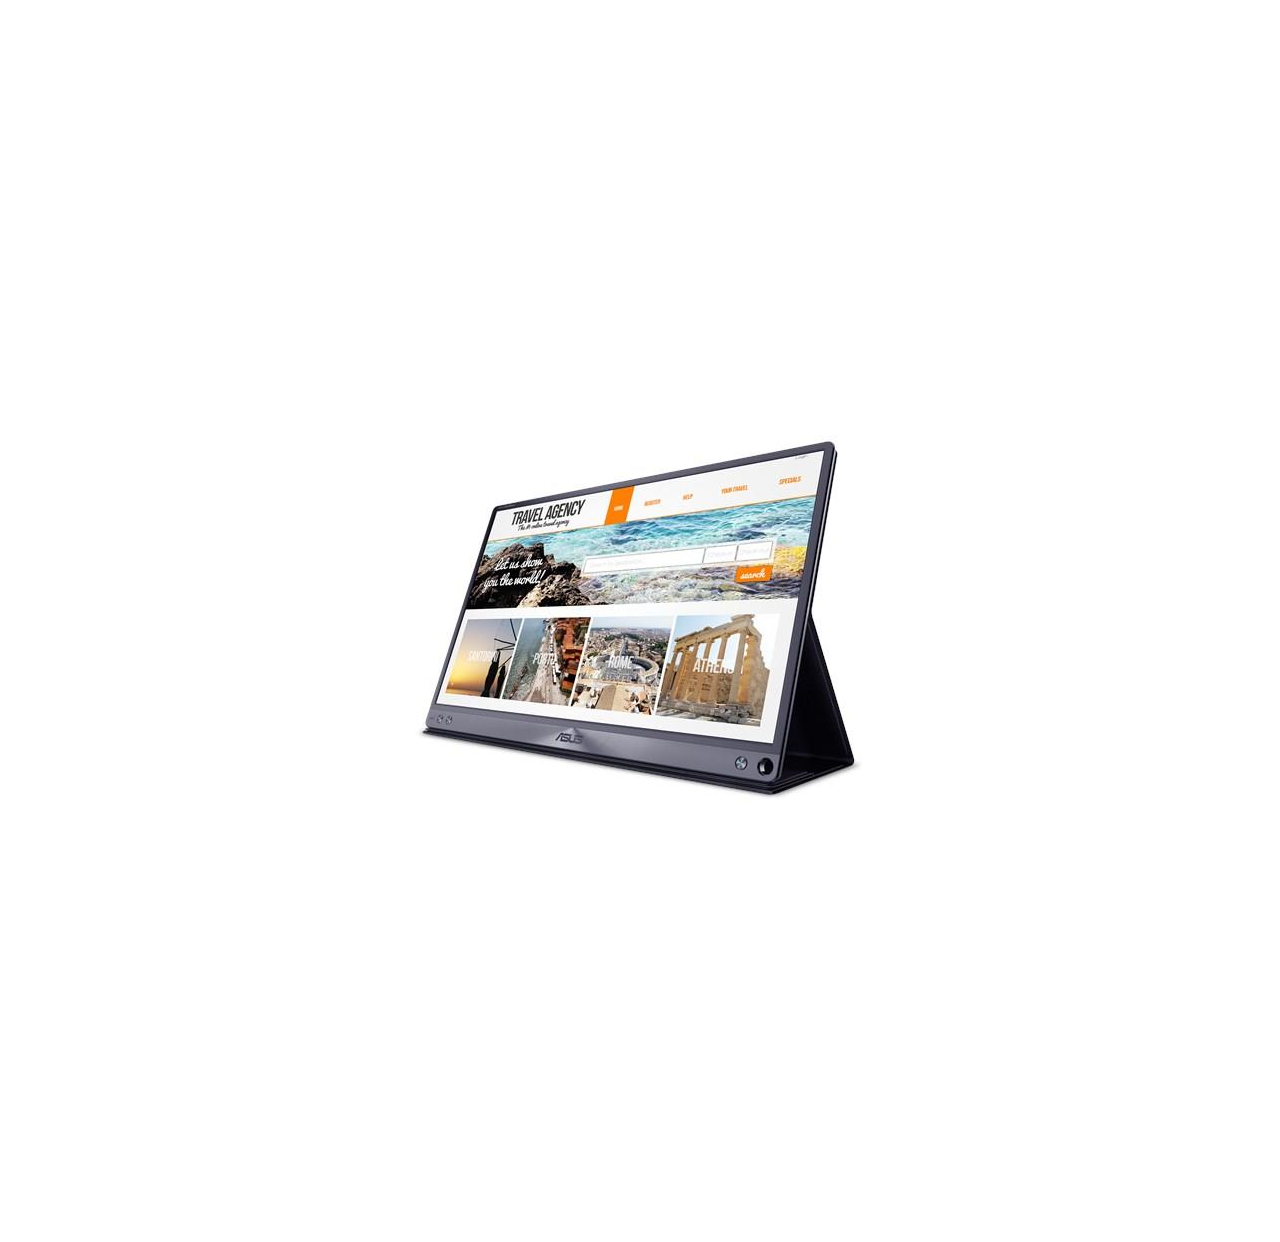 Monitor Asus MB16AC 15.6 IPS USB Type-C